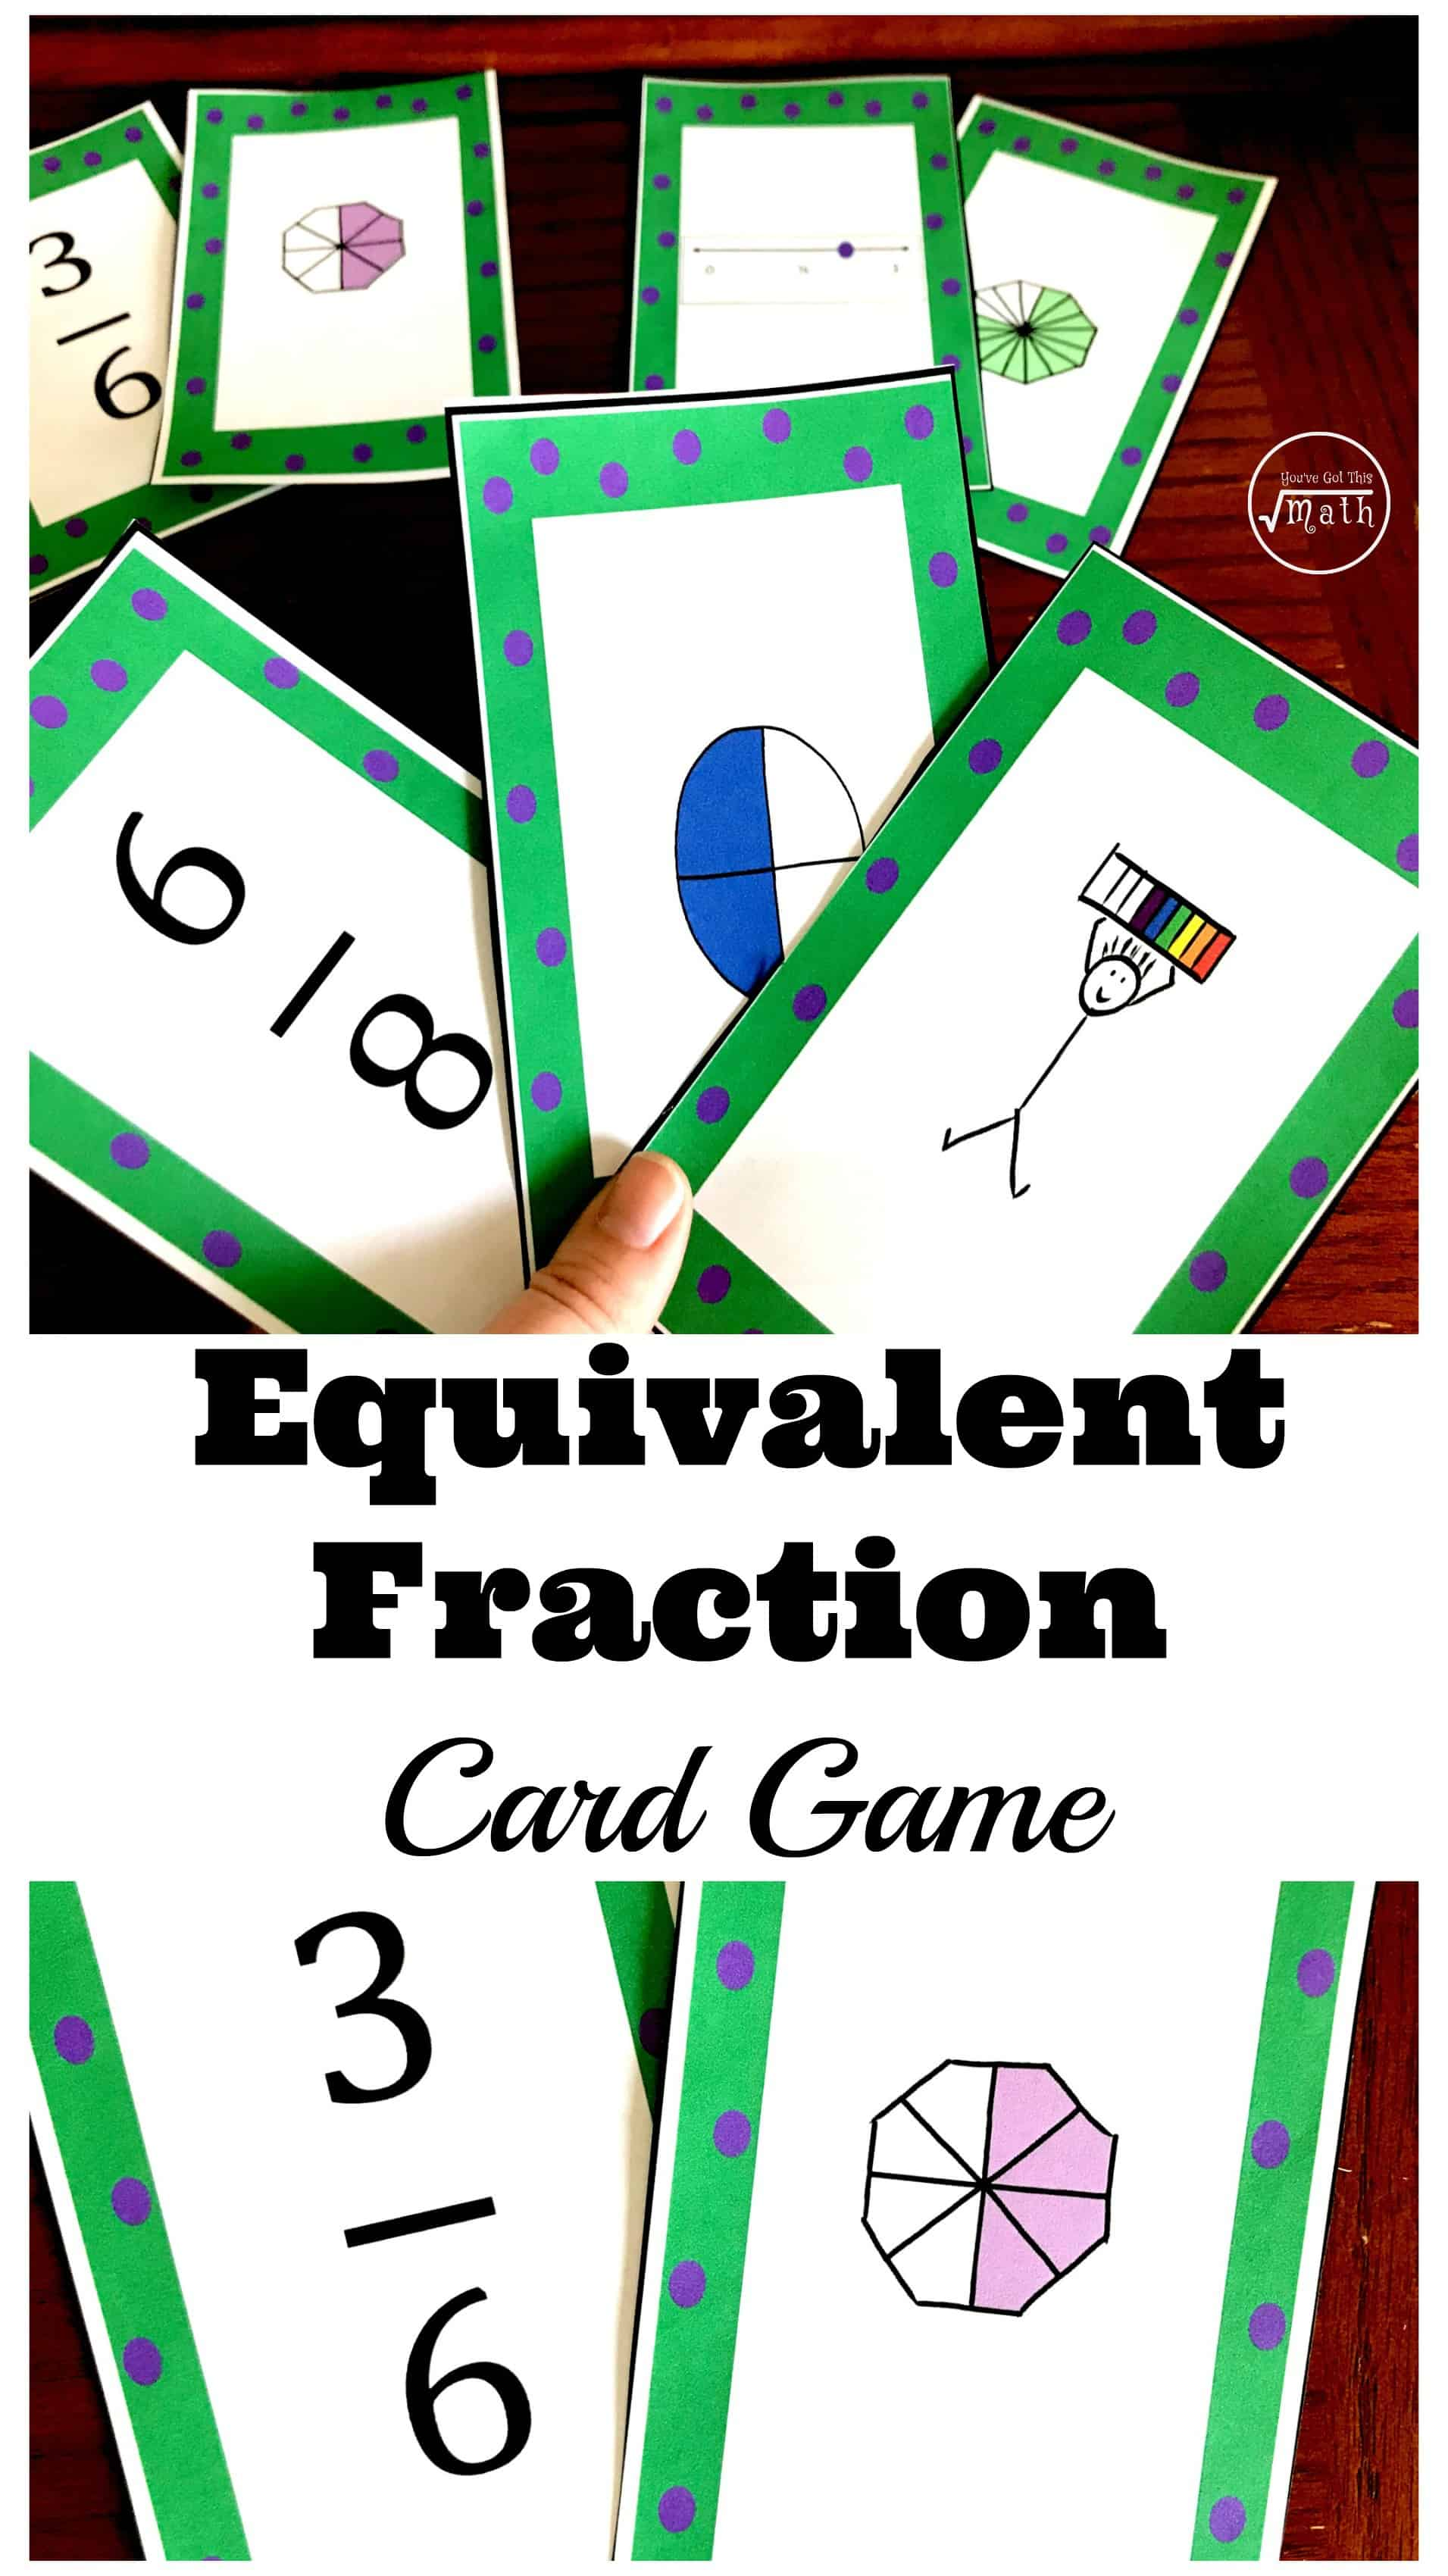 This equivalent fractions card game is a fun way for children to practice equivalent fractions using numbers, models, and number lines.